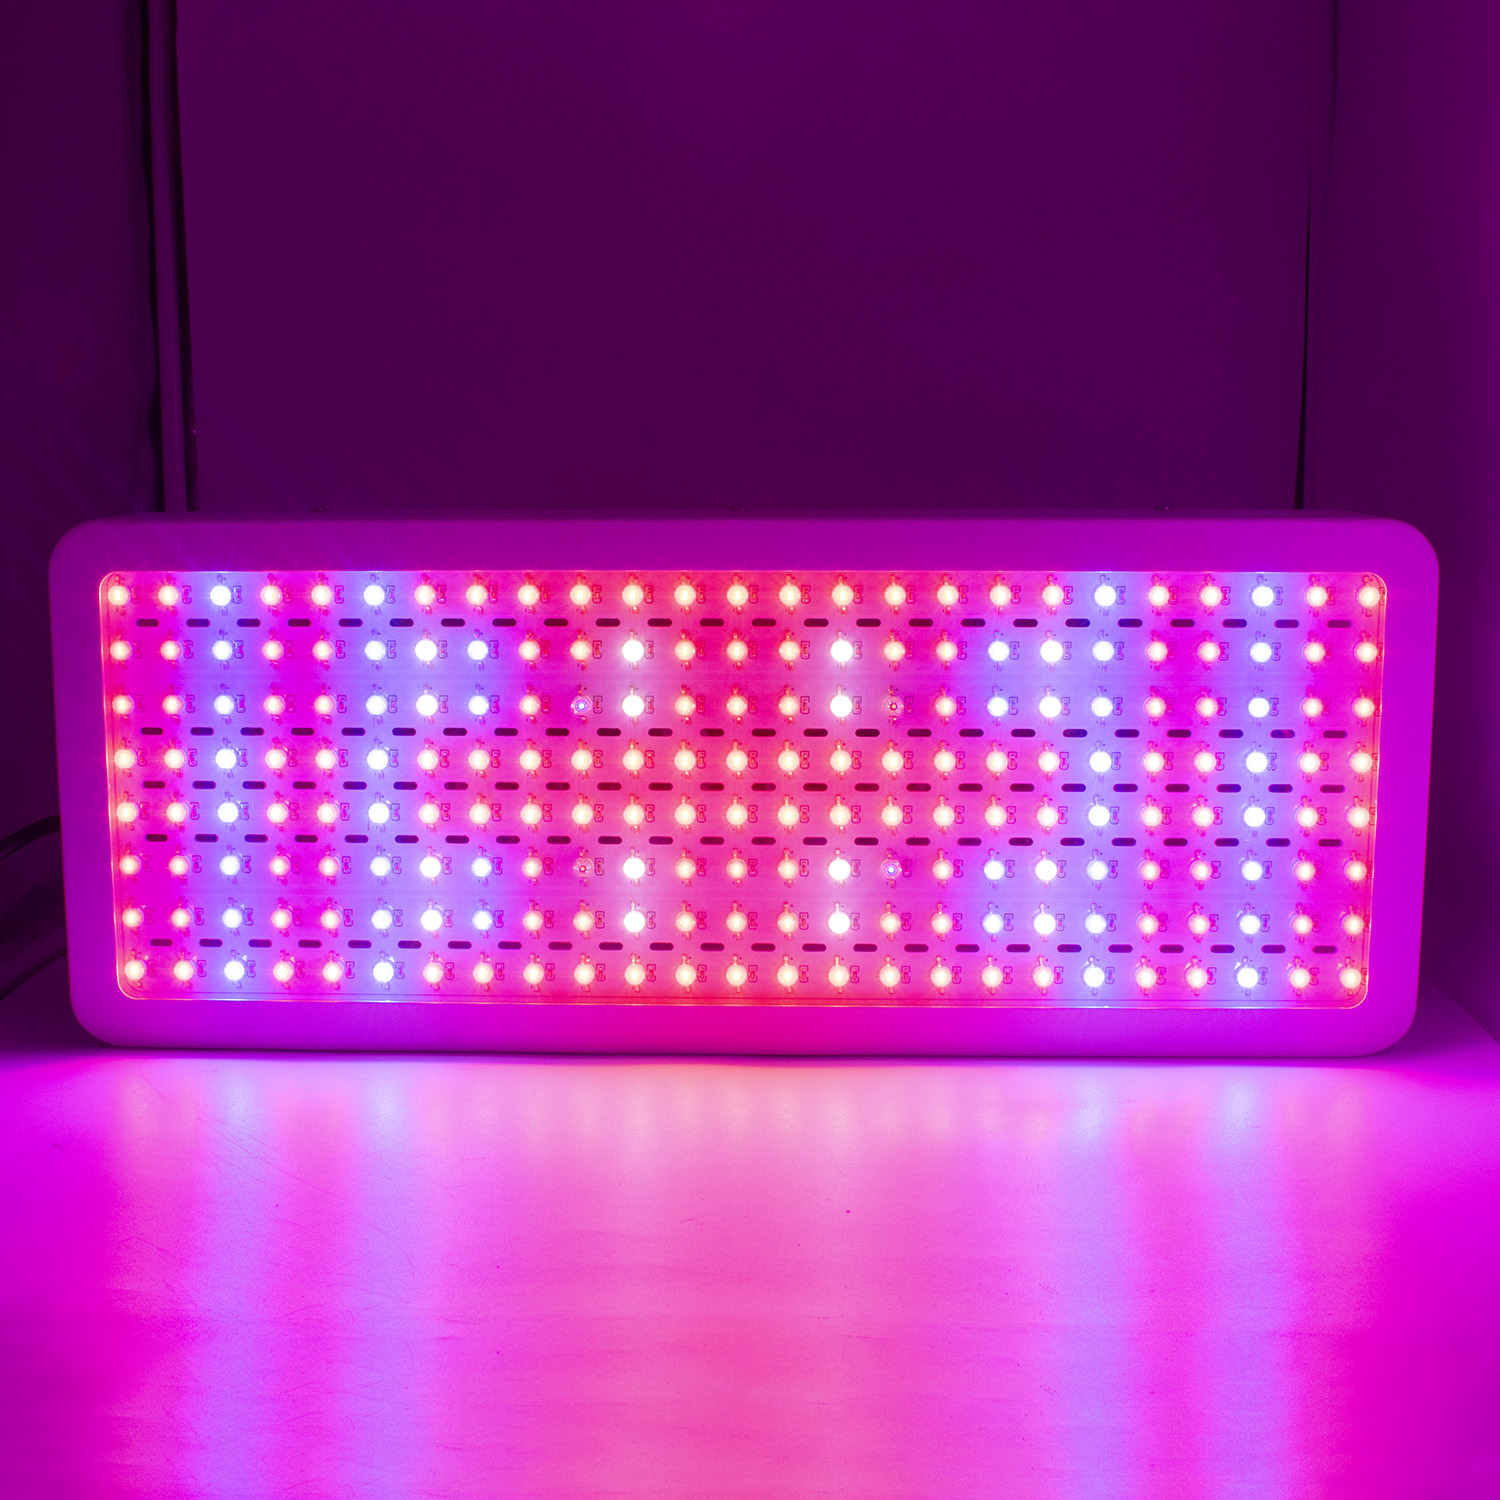 Full Spectrum 3000W LED Grow Light Panel Hydroponic Indoor Plant Flower Blooming